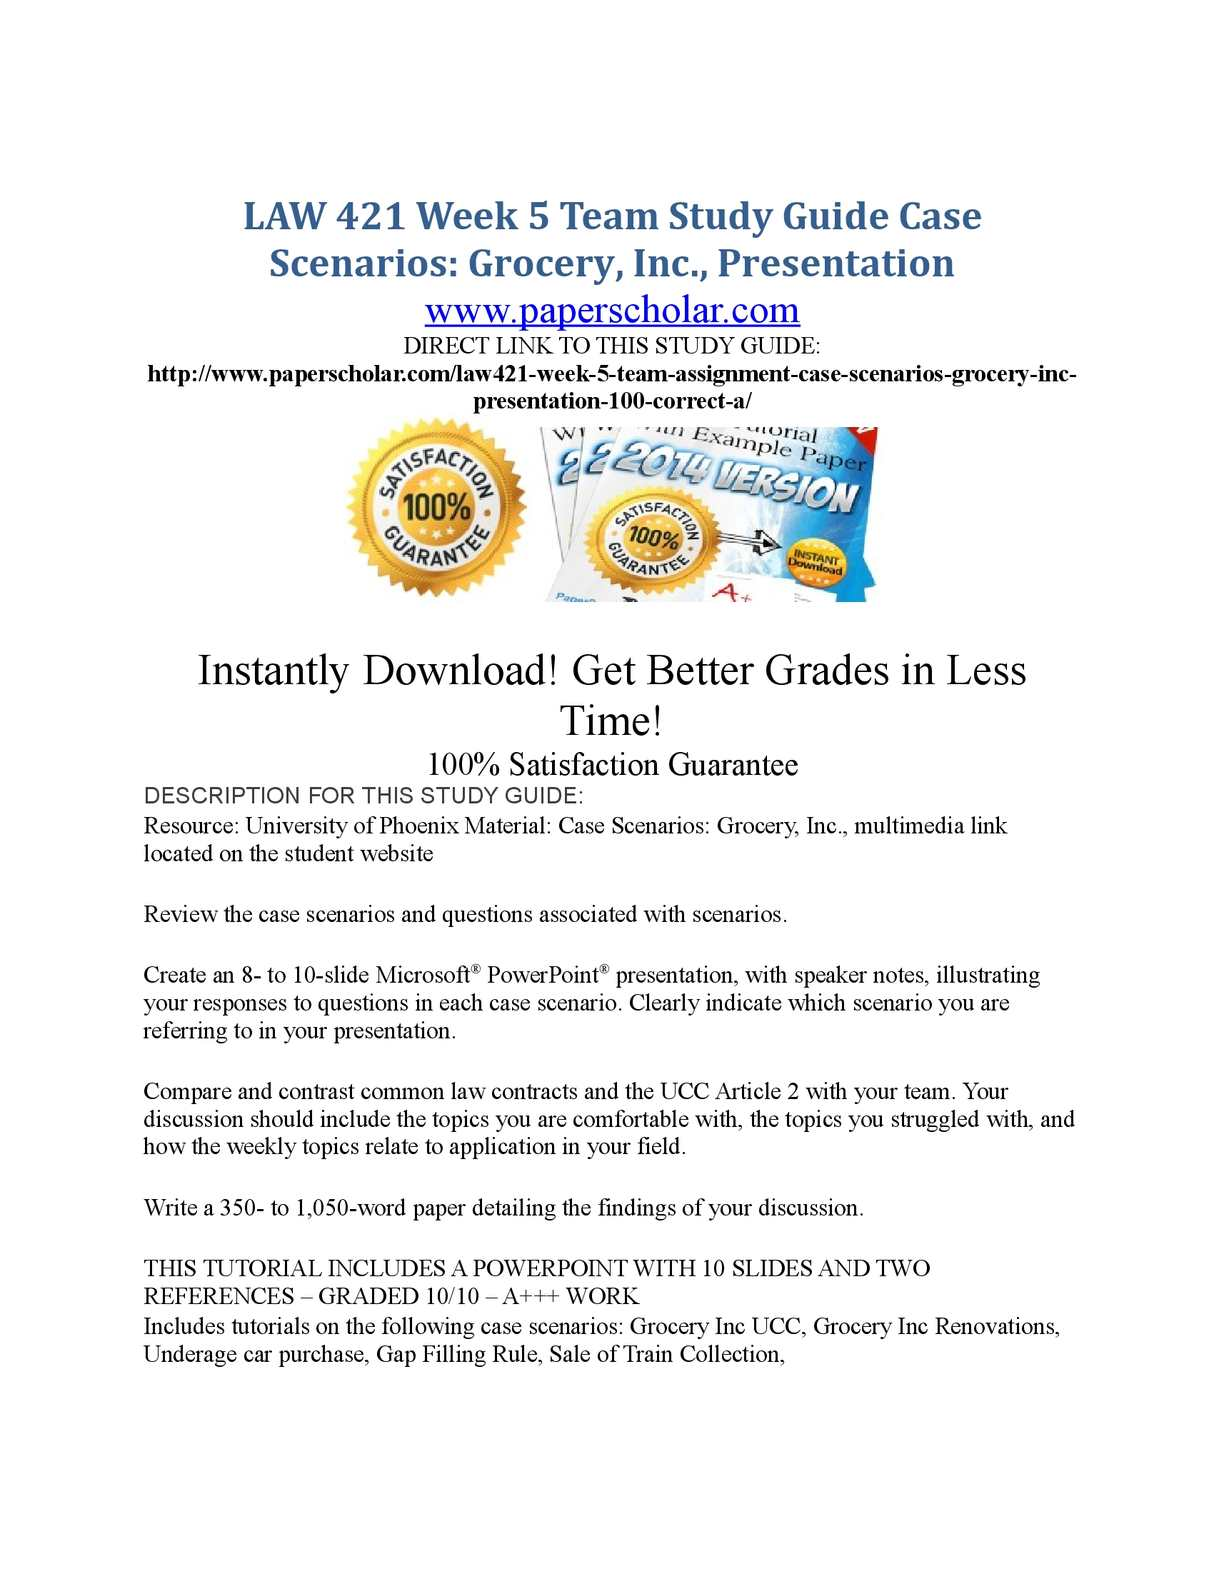 grocery inc law 421 Learning team case scenarios grocery inc presentation resource university of phoenix material multimedia link located on the.